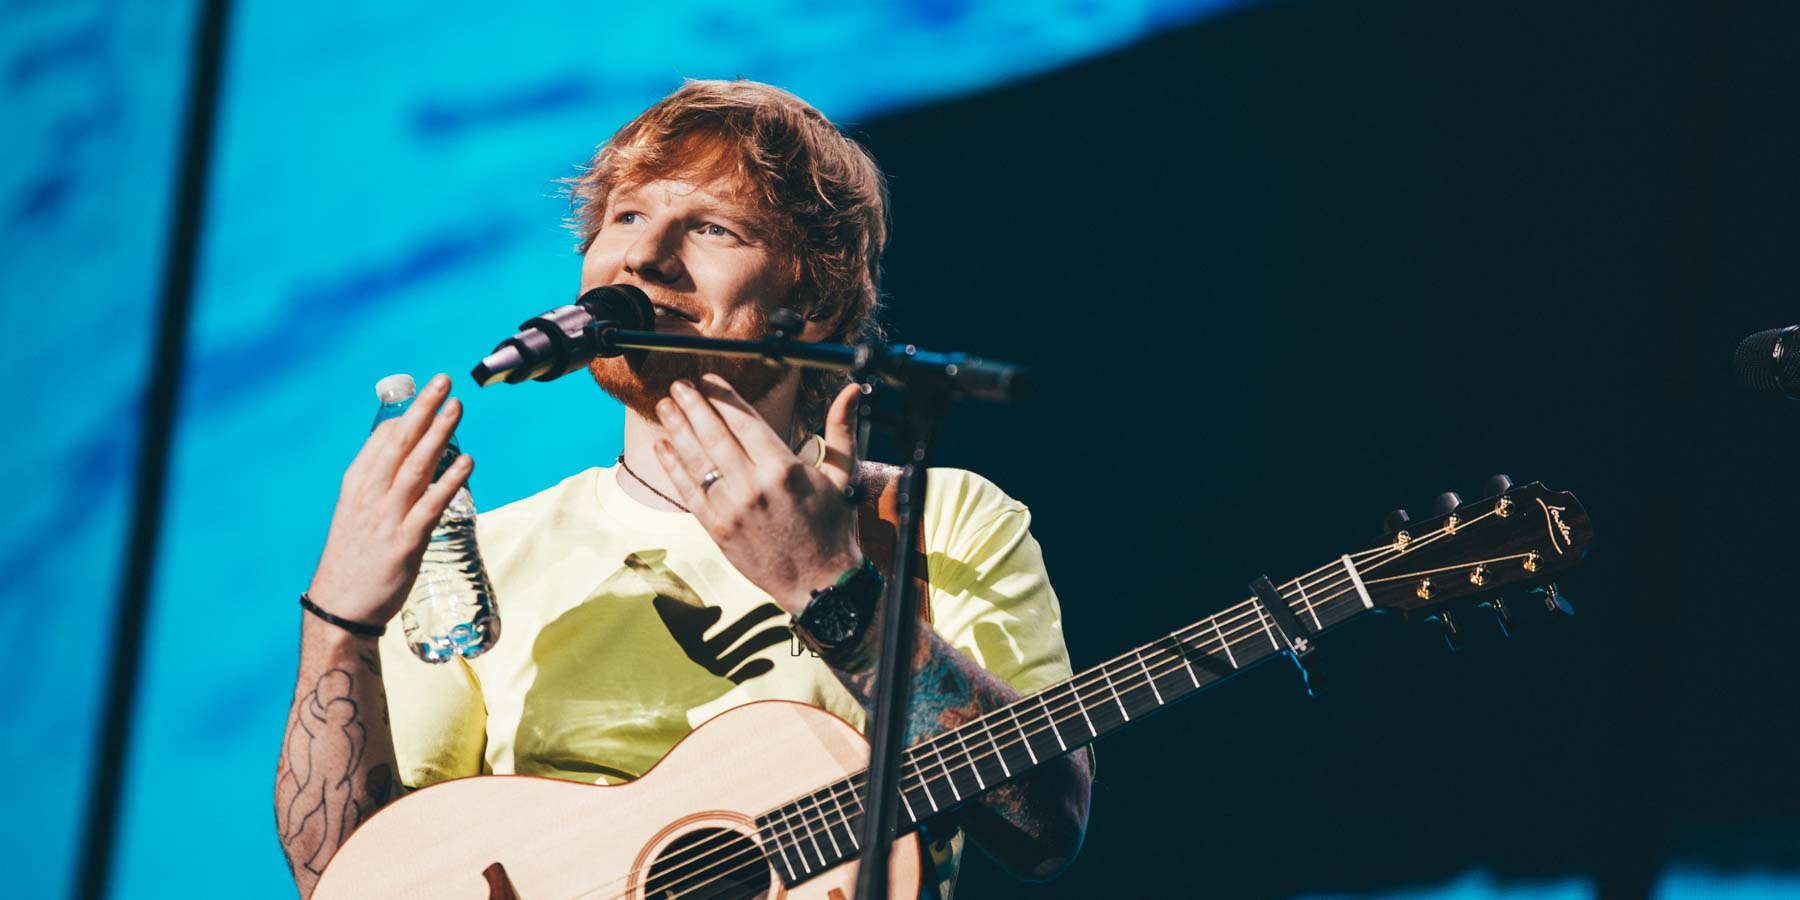 Ed Sheeran North American Stadium Tour 2018 - U.S. Bank Stadium Minneapolis Minnesota - October 20th 2018 - Snow Patrol Lauv